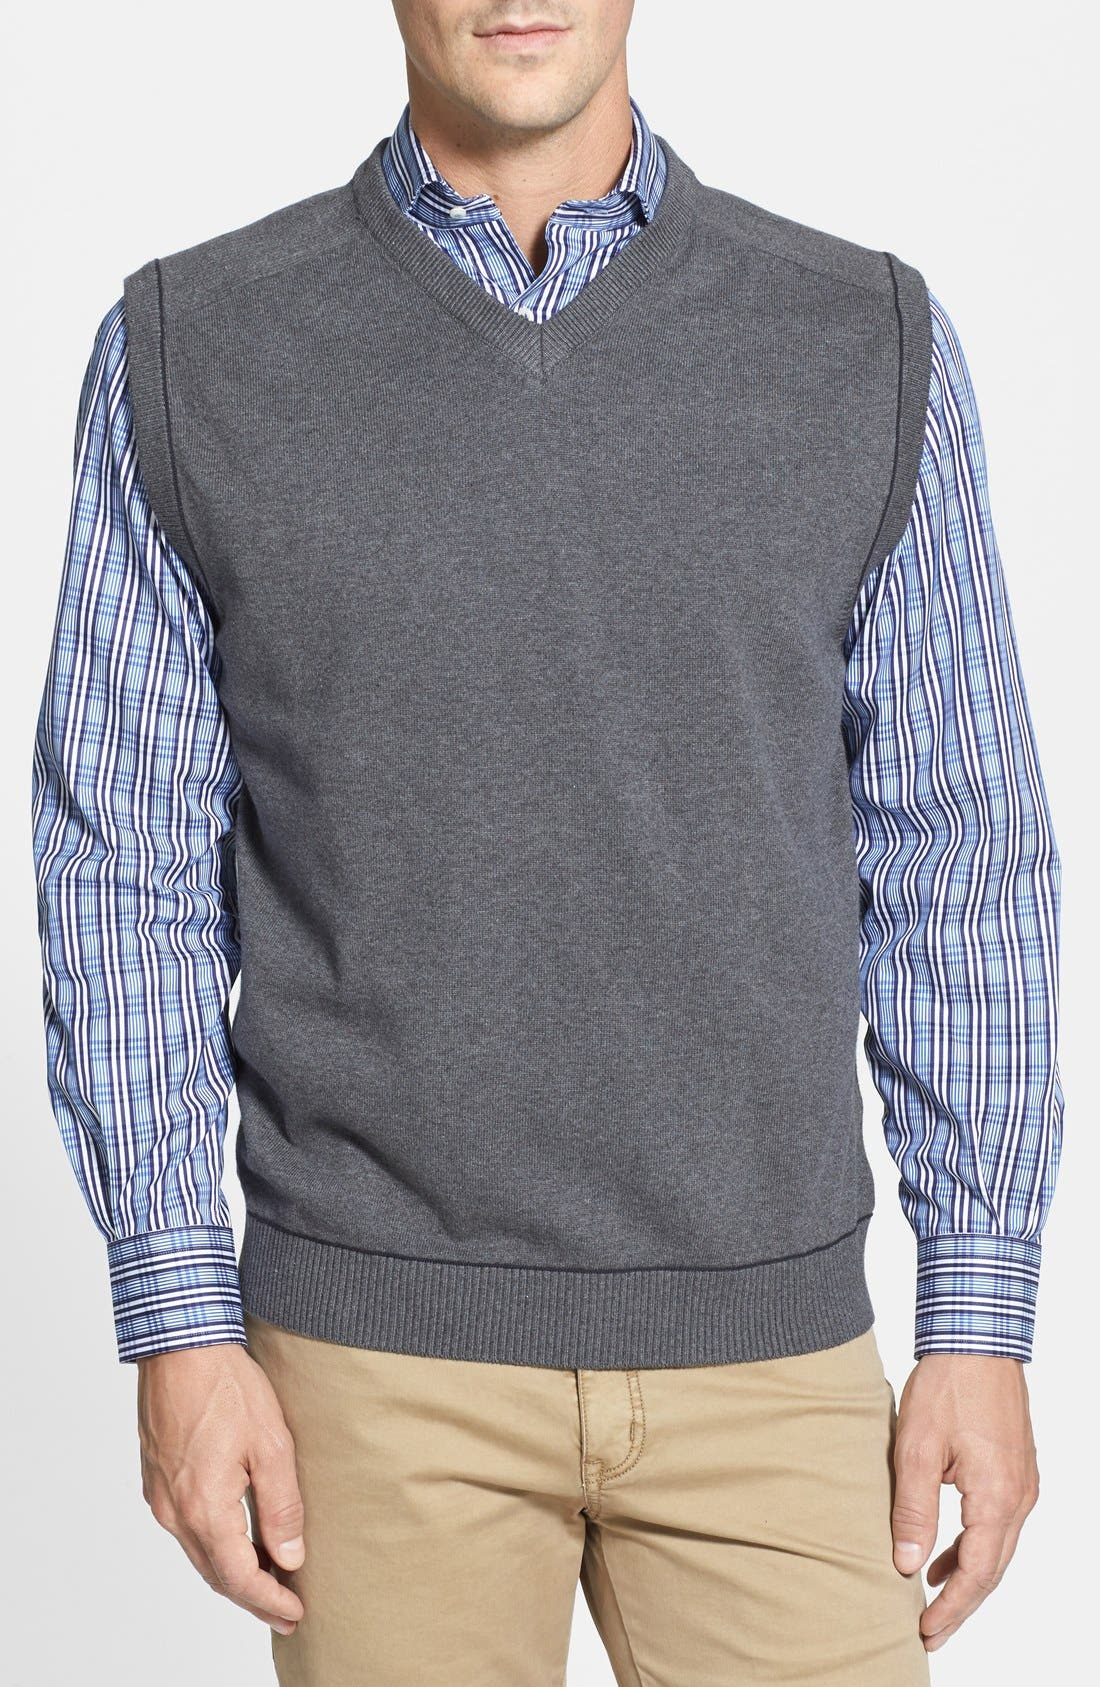 Alternate Image 1 Selected - Cutter & Buck Broadview V-Neck Sweater Vest